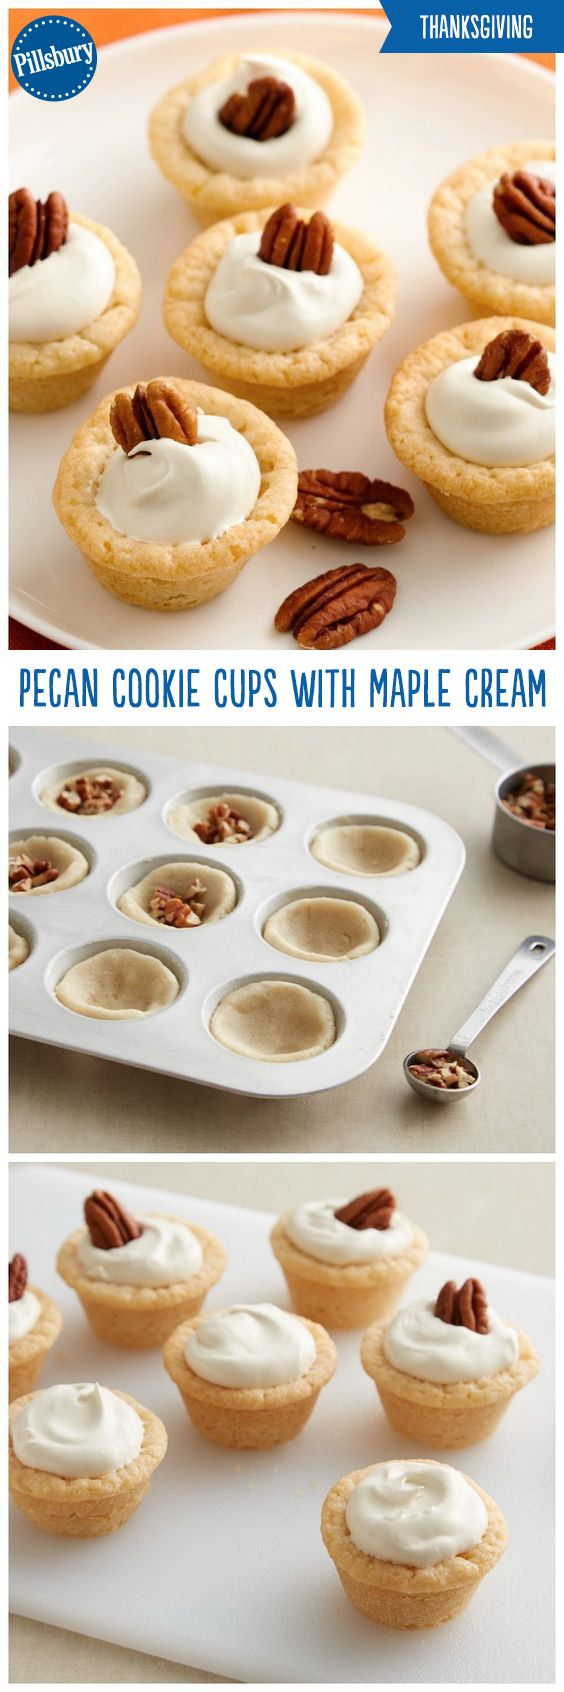 These cookie cups are the perfect shareable treat this holiday season loaded with pecan and maple flavor!